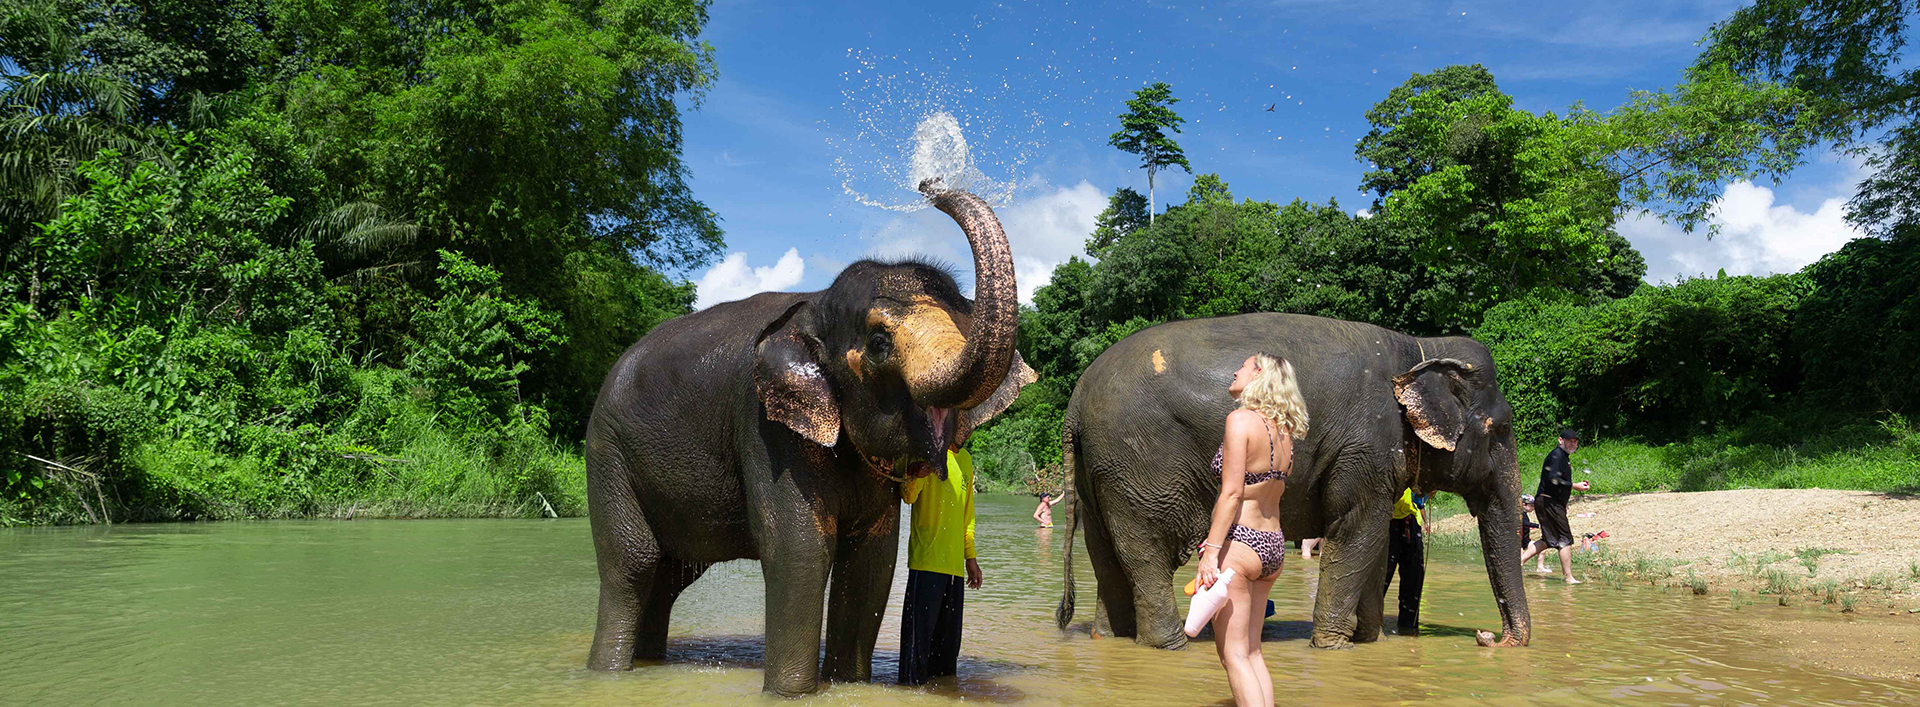 elephant-sanctuary-thailand